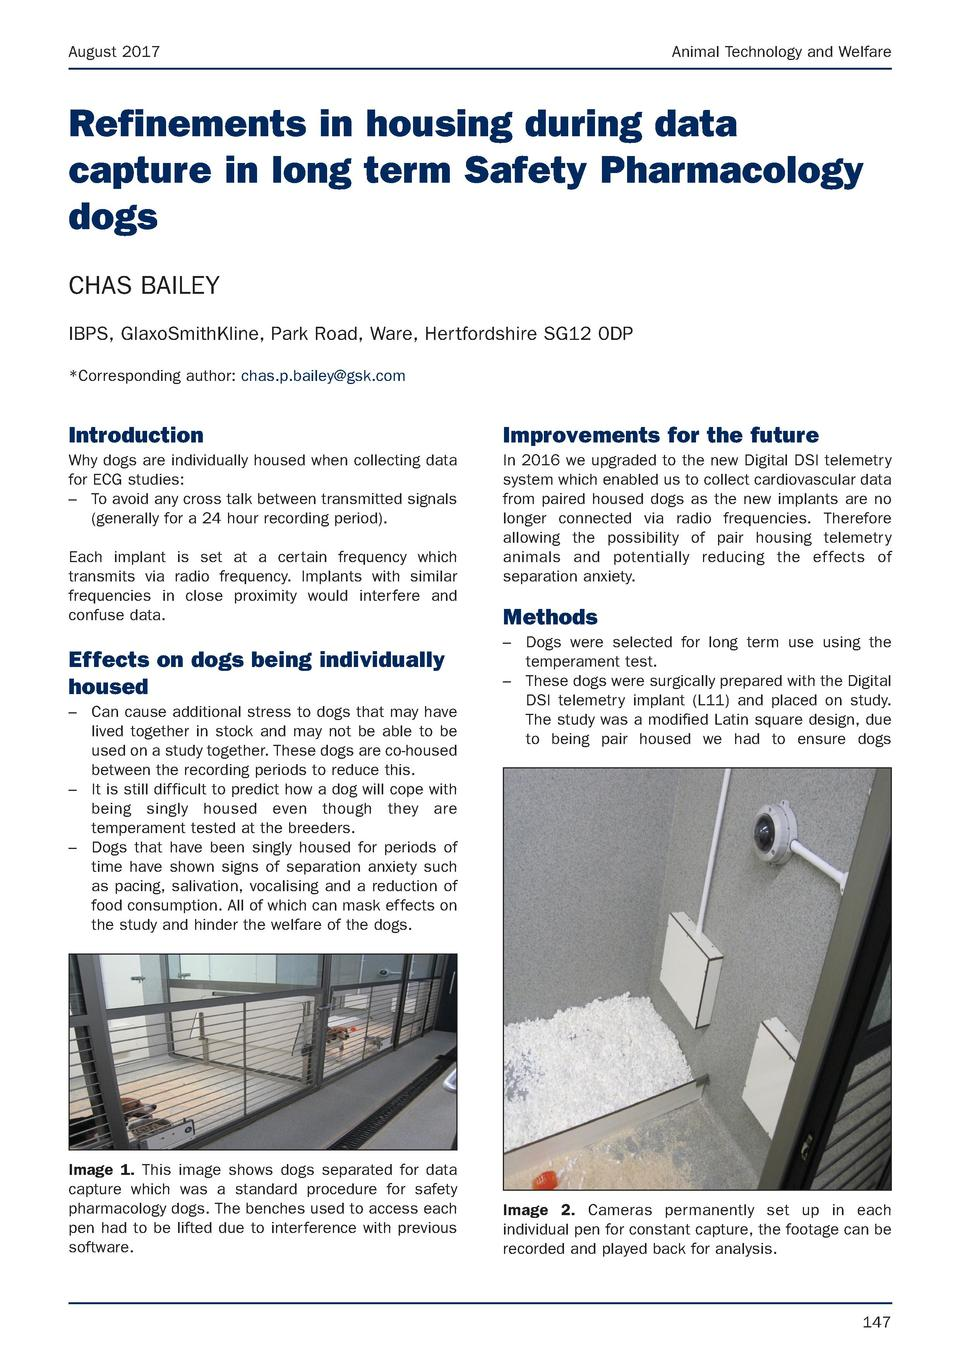 August 2017  Animal Technology and Welfare  Refinements in housing during data capture in long term Safety Pharmacology do...